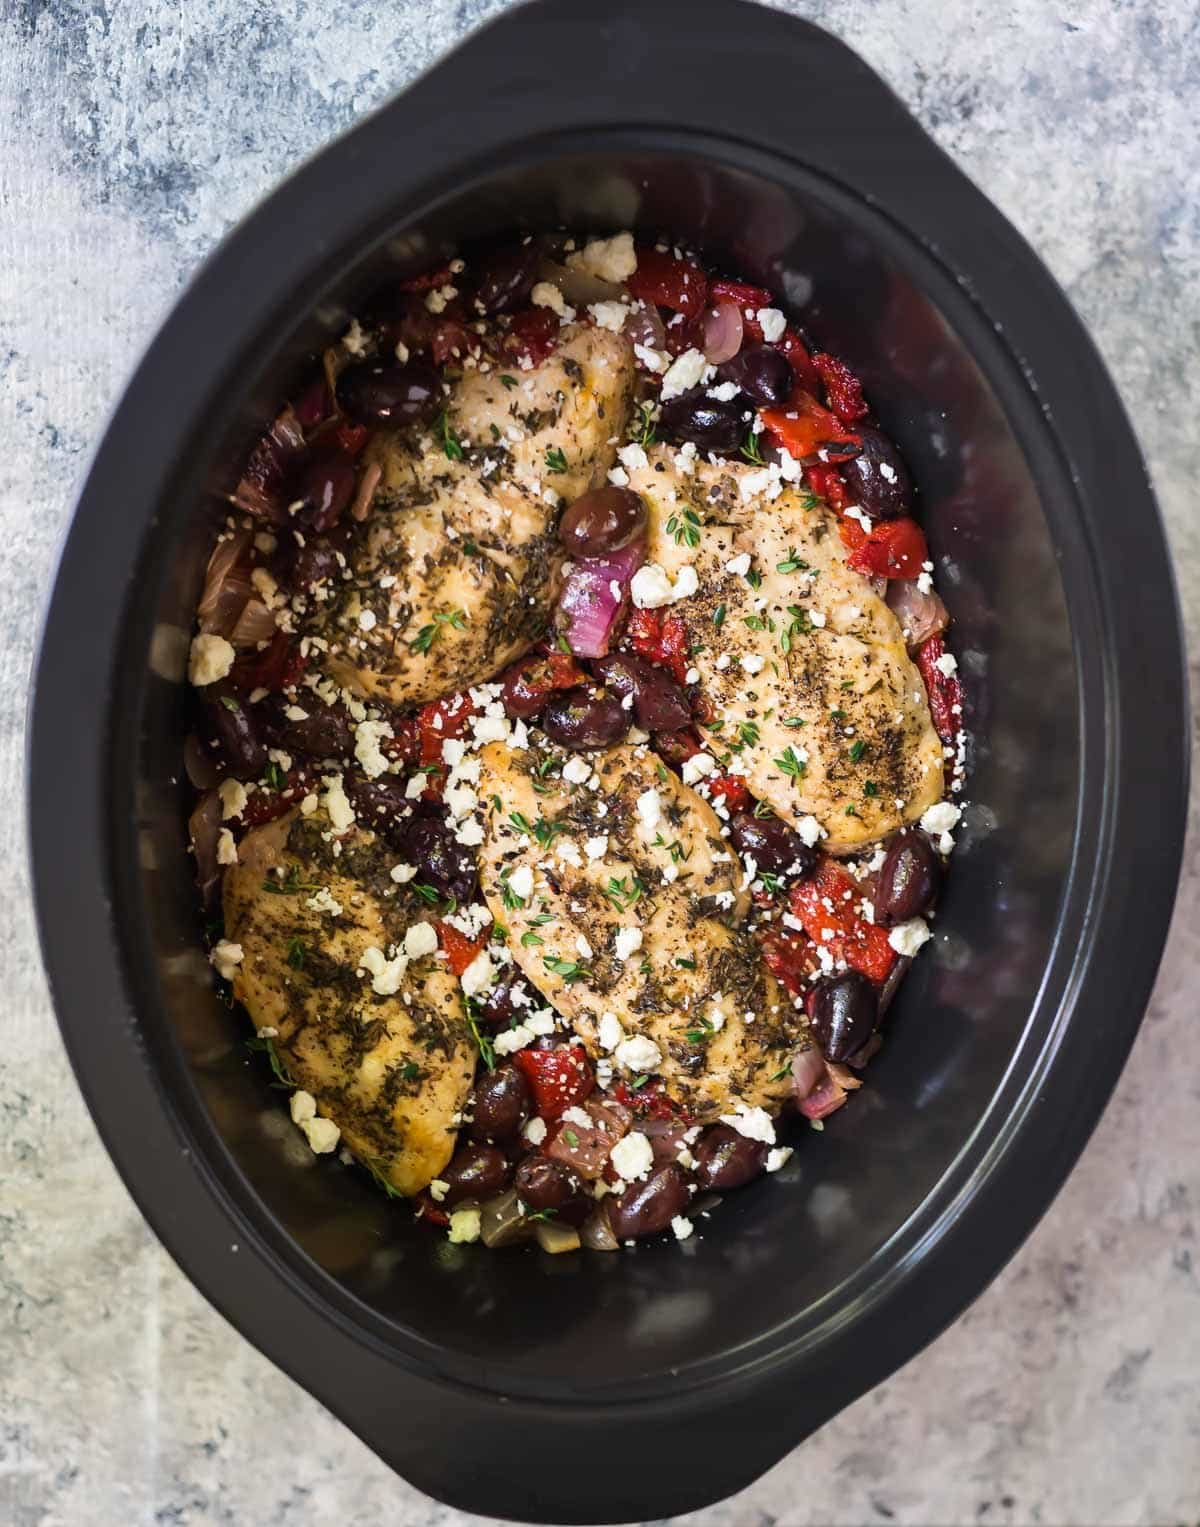 Greek Chicken, done the easy way in the slow cooker! The chicken is moist and the greek chicken marinade with red wine vinegar gives it incredible flavor. Recipe at wellplated.com